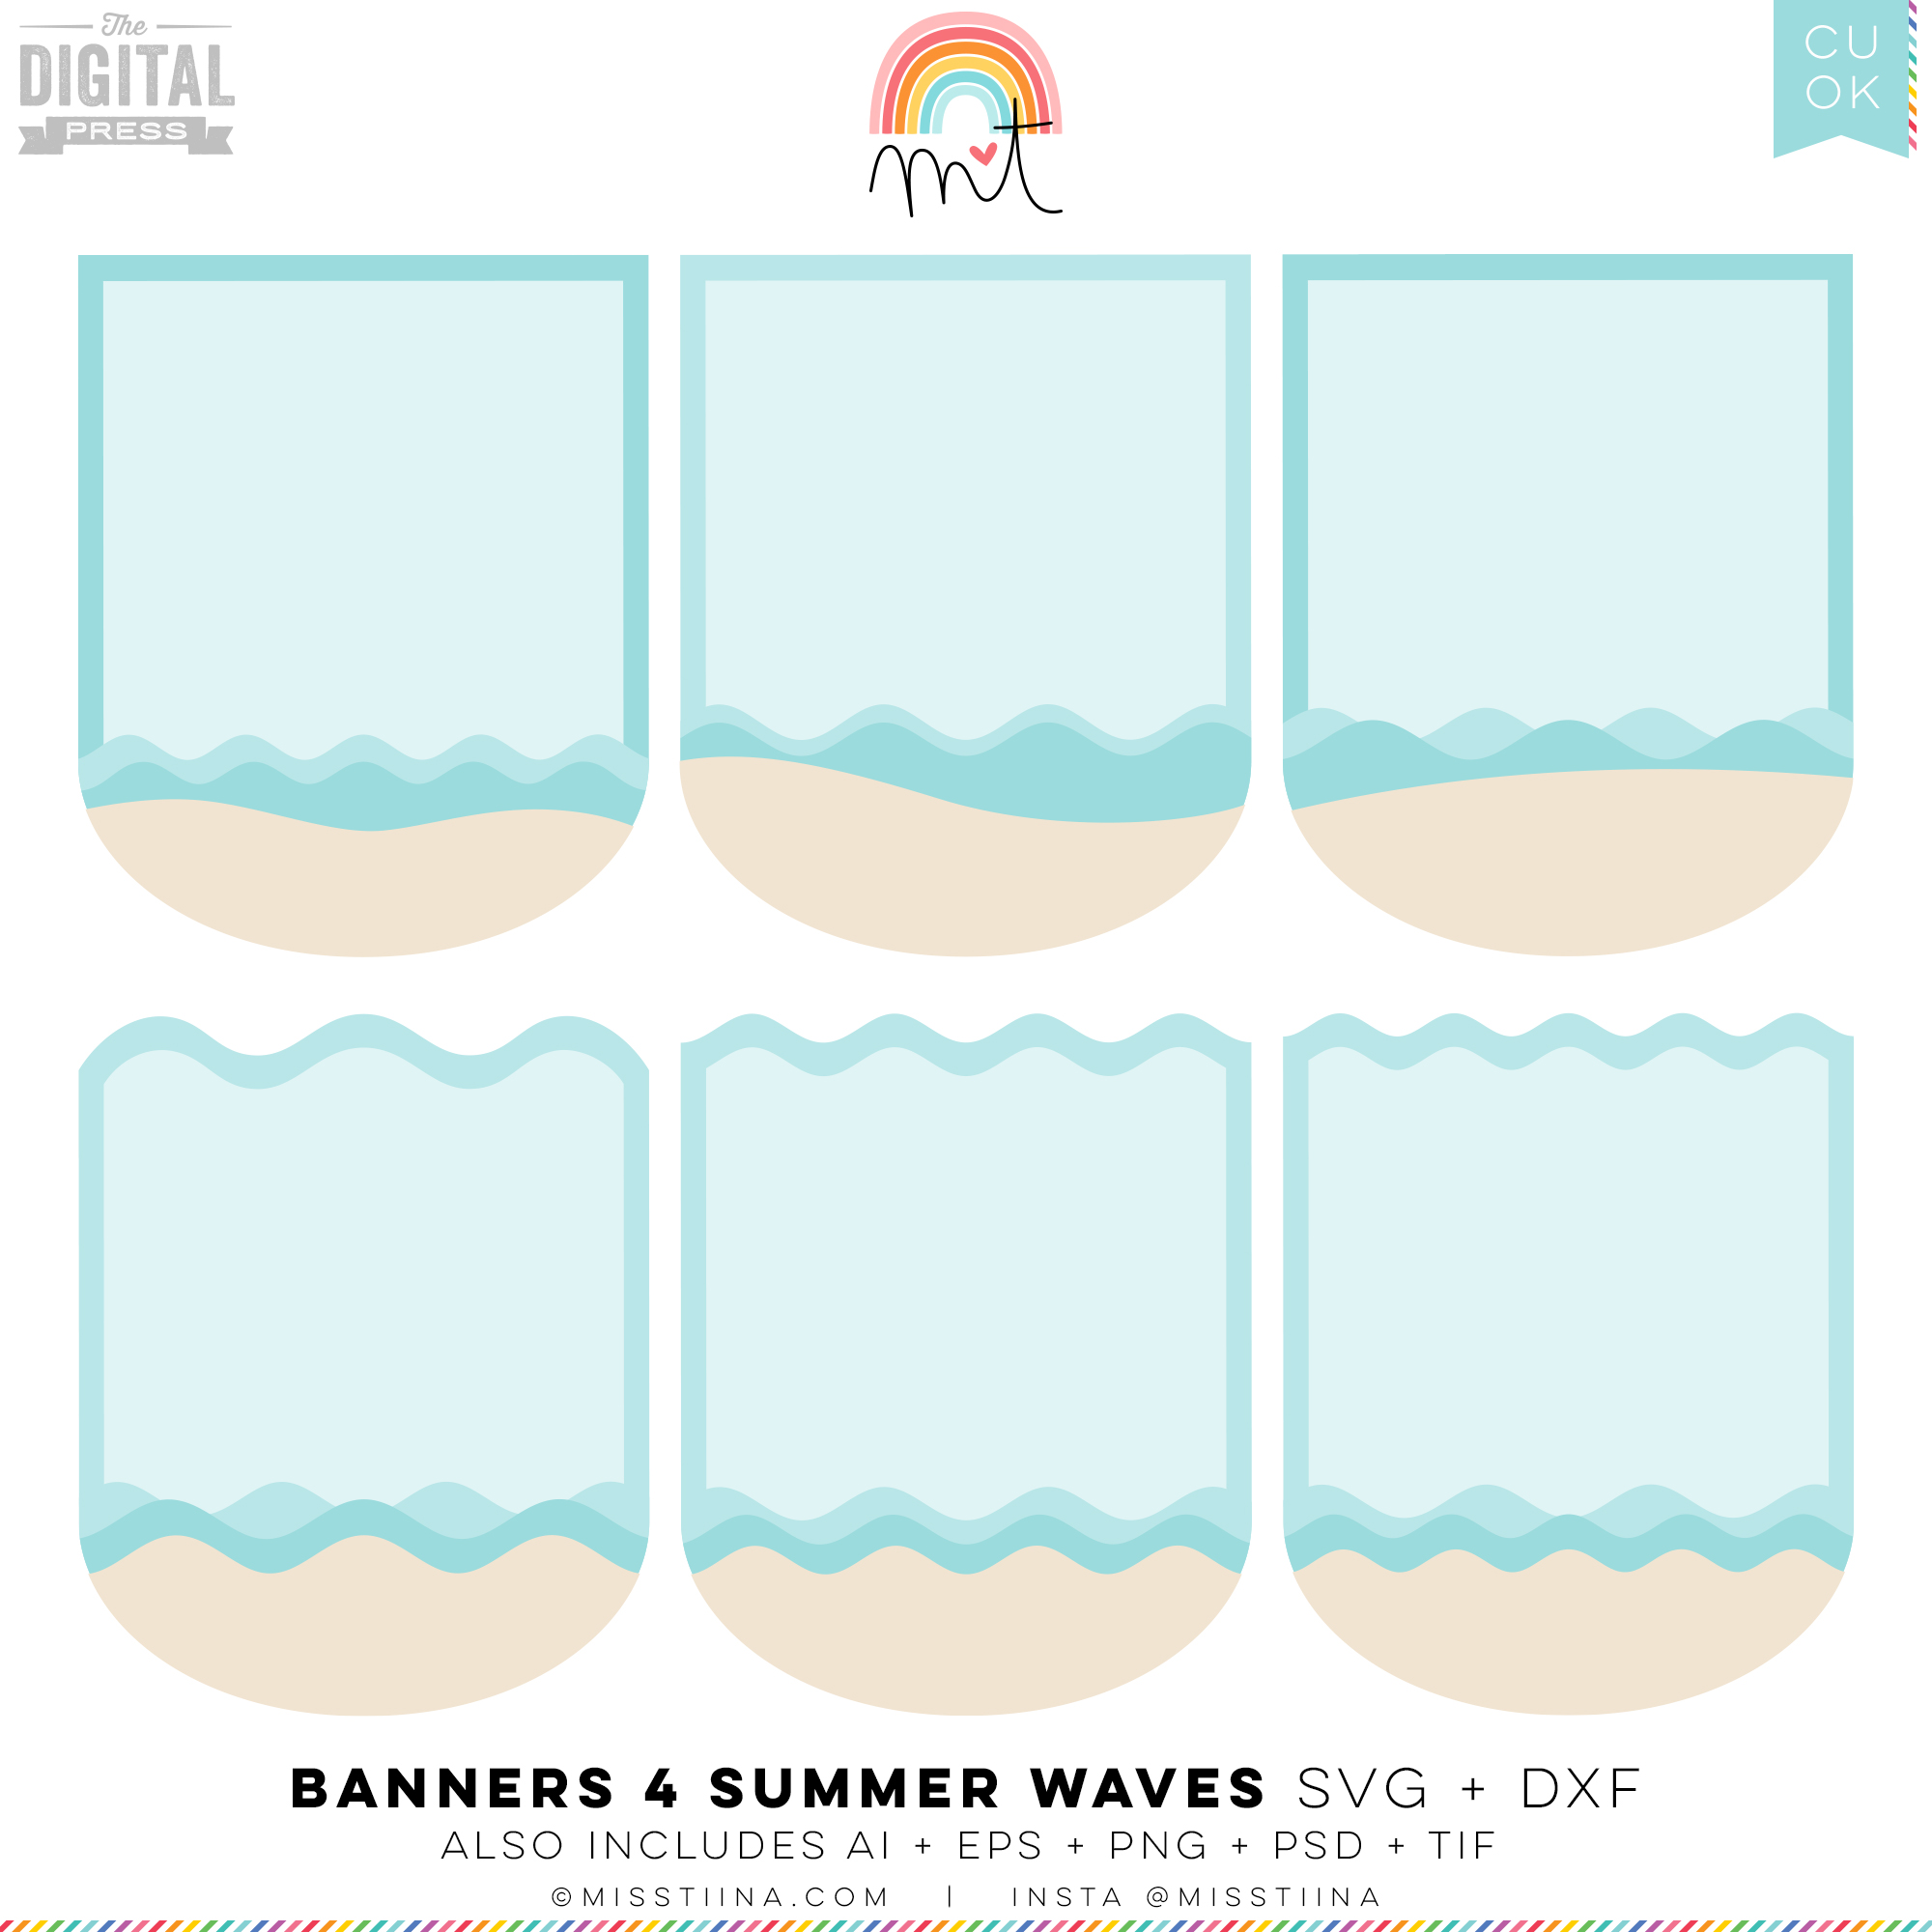 Banners 4 - Sand and Summer Waves SVG (CU)